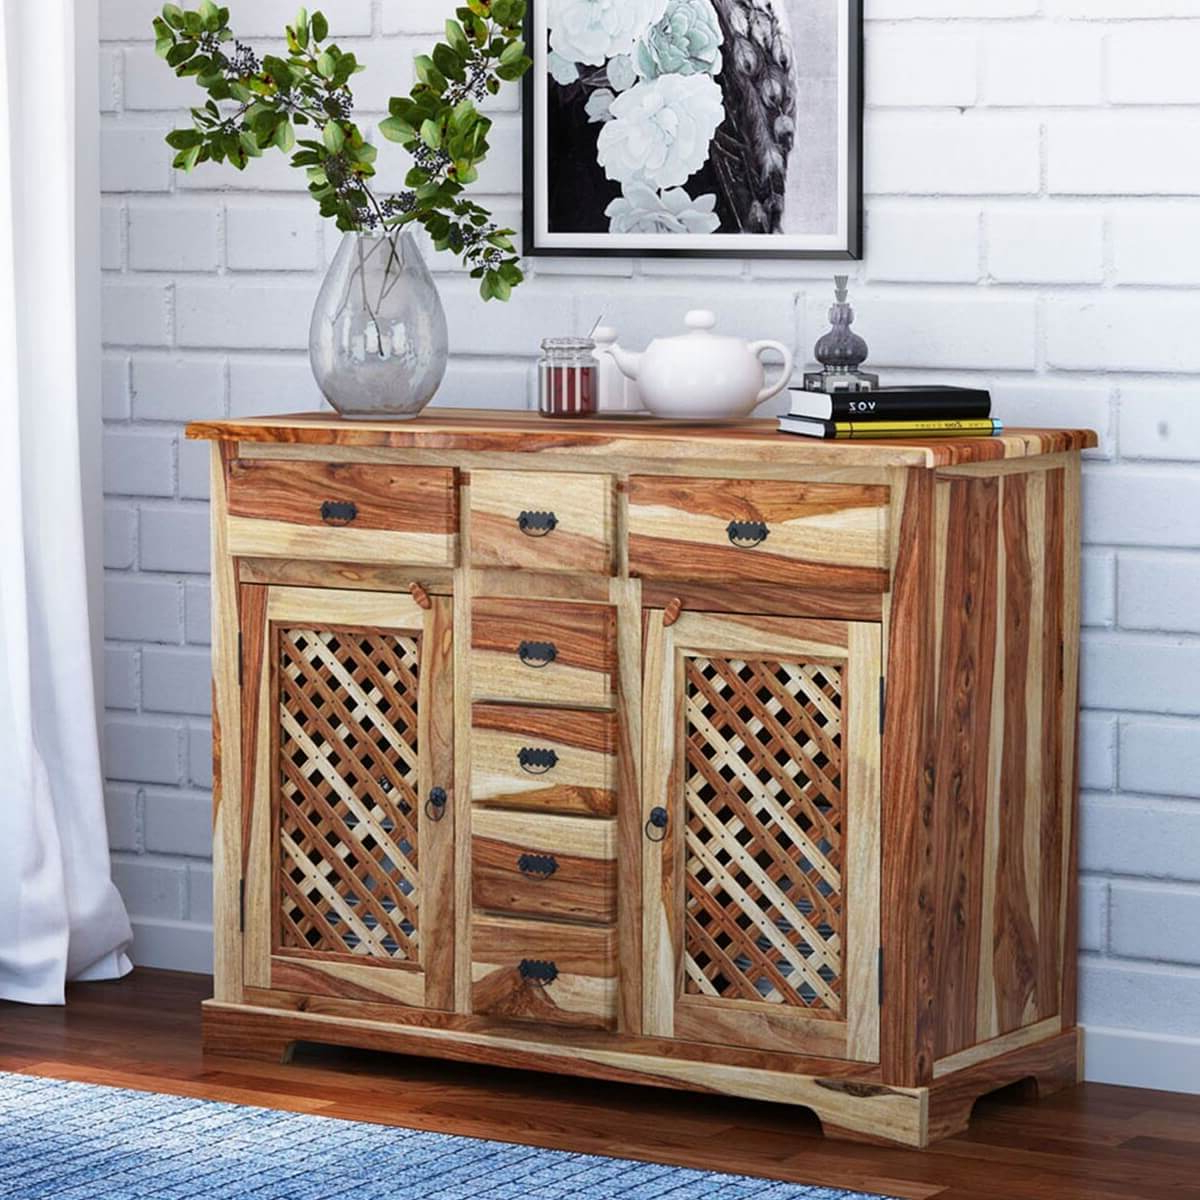 Galena Rustic Solid Wood Lattice Door 7 Drawer Sideboard Inside 2019 Courtdale Sideboards (View 18 of 20)